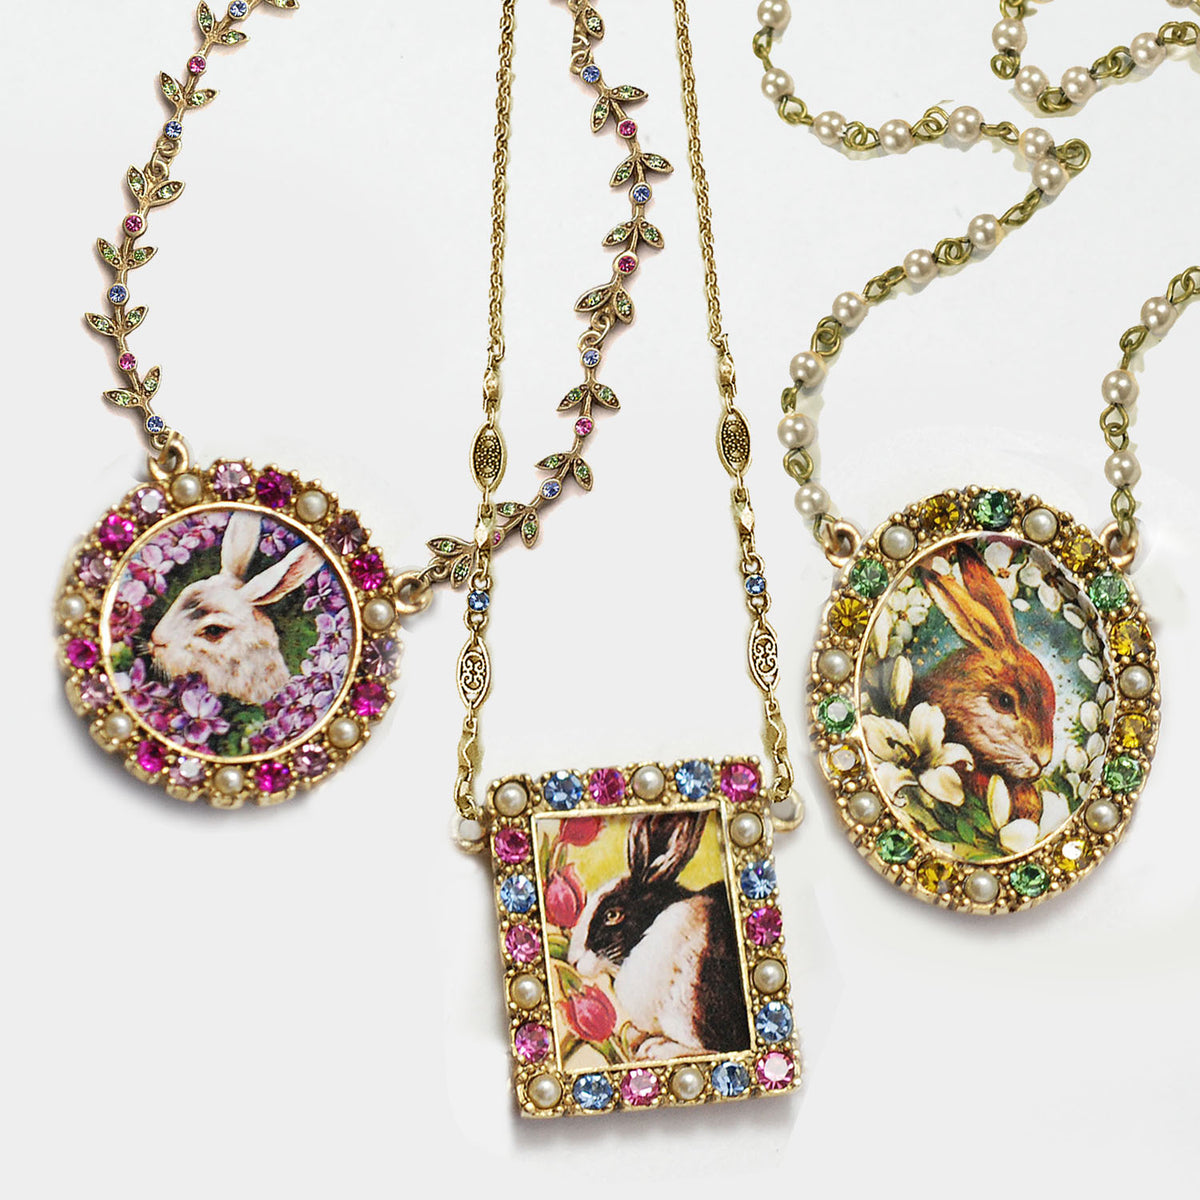 Garden of Bunnies Necklace N1644